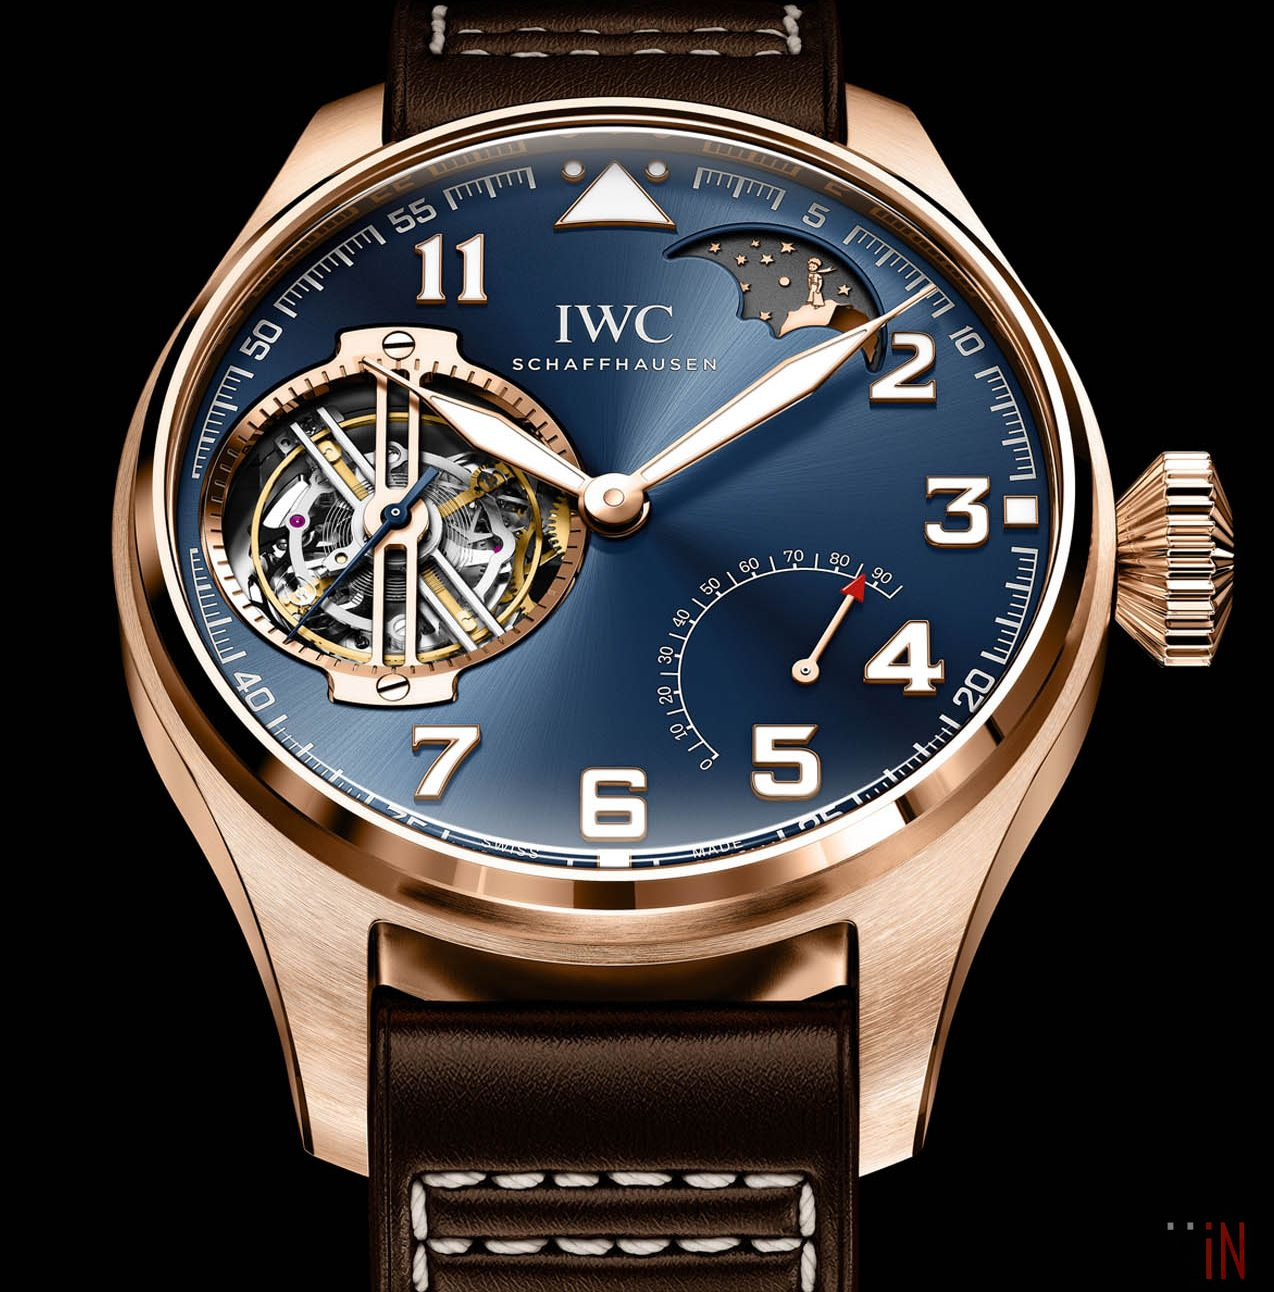 Iwc Big Pilot Constant Force Tourbillon Le Petit Prince Edition Best Watches For Men Luxury Watches For Men Watches For Men